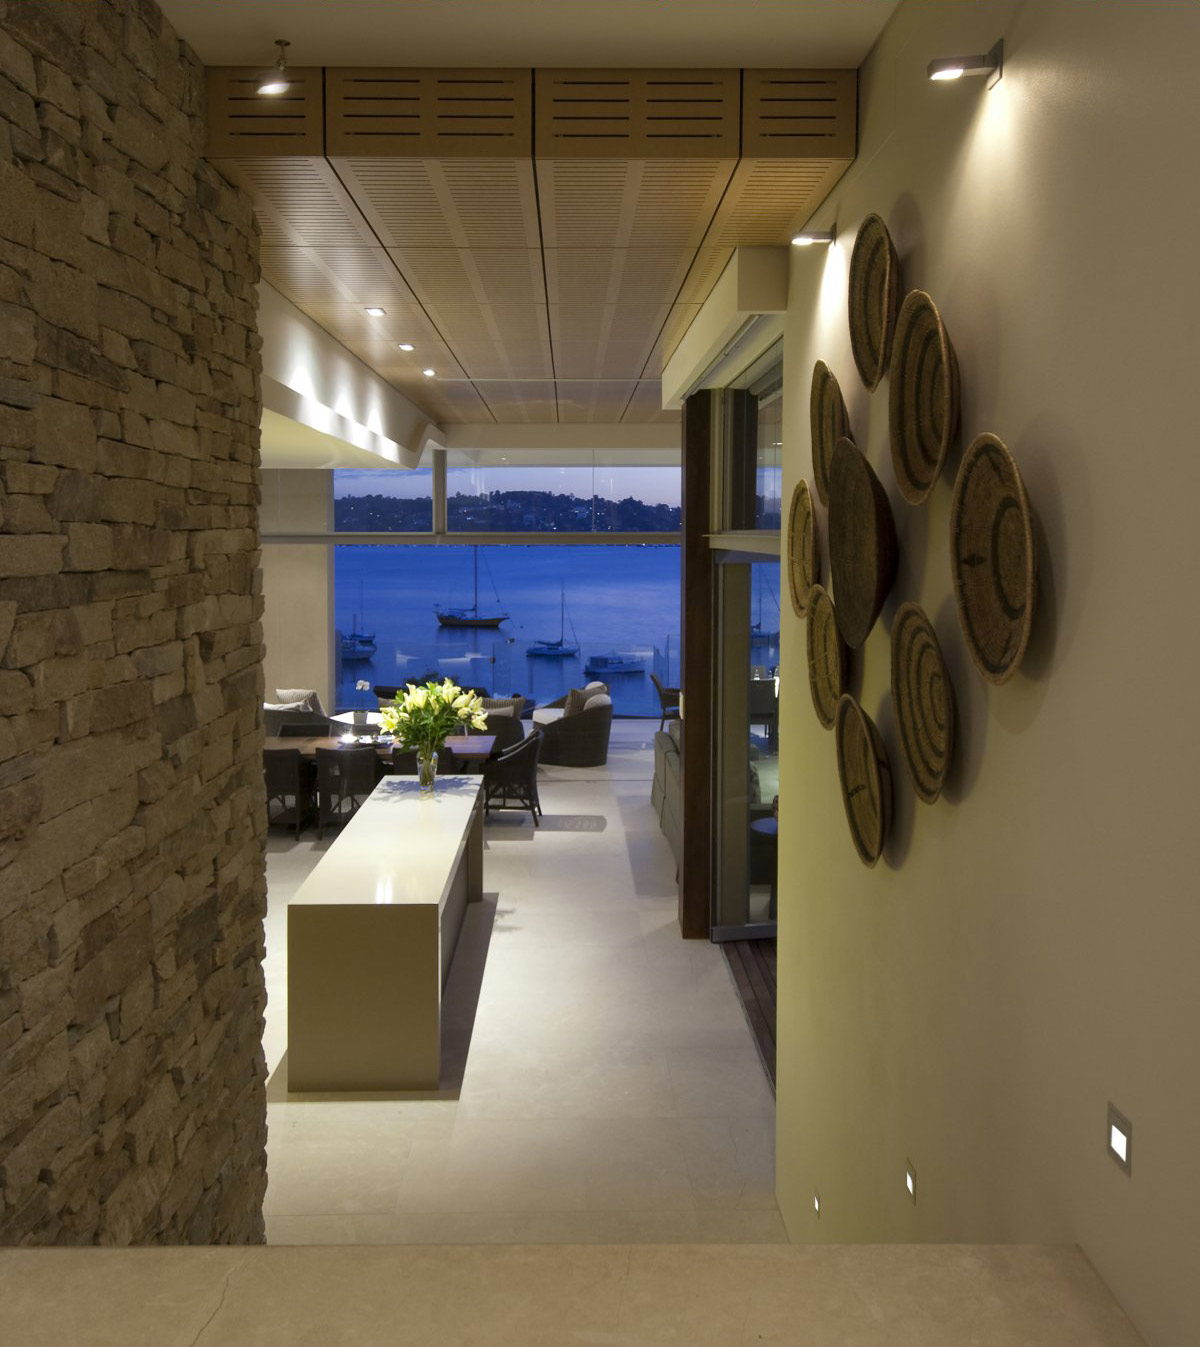 Art, Water Views, Waterfront Home in Vaucluse, Sydney